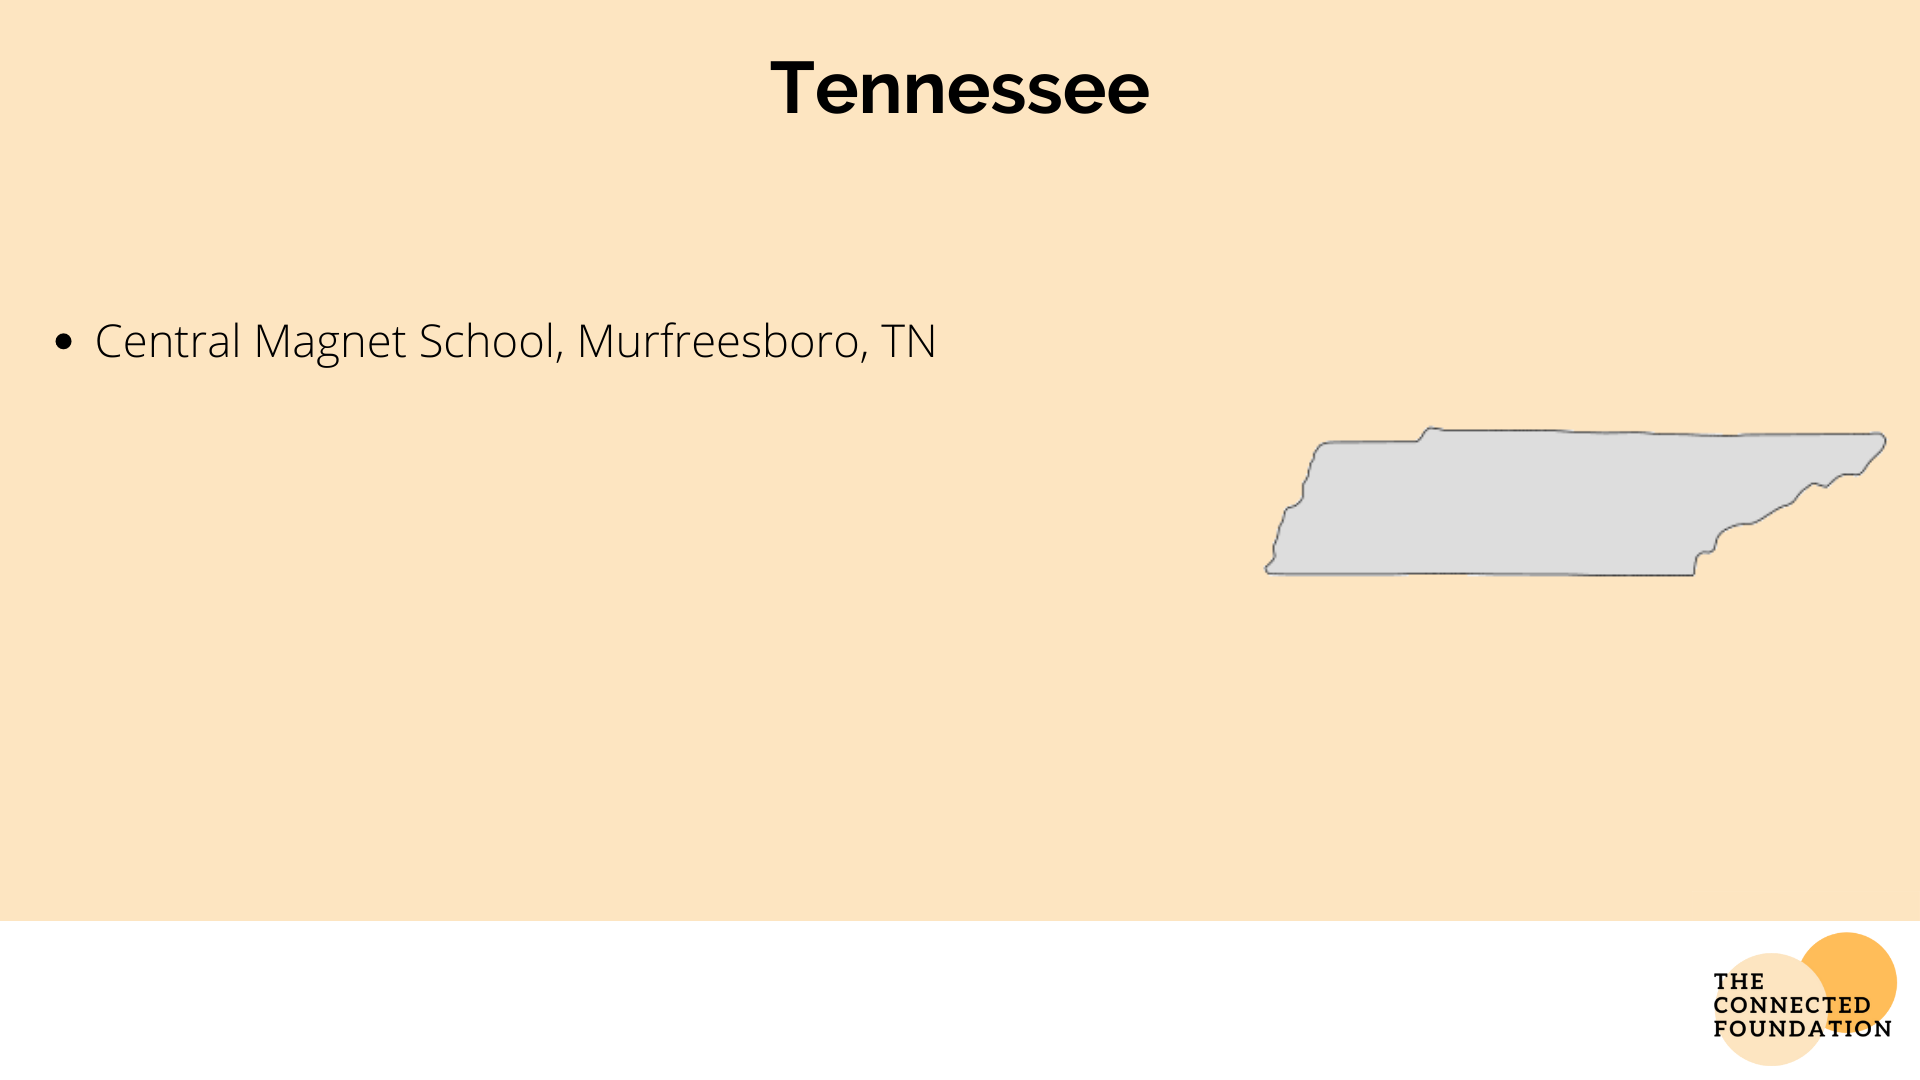 Central Magnet School in Tennessee